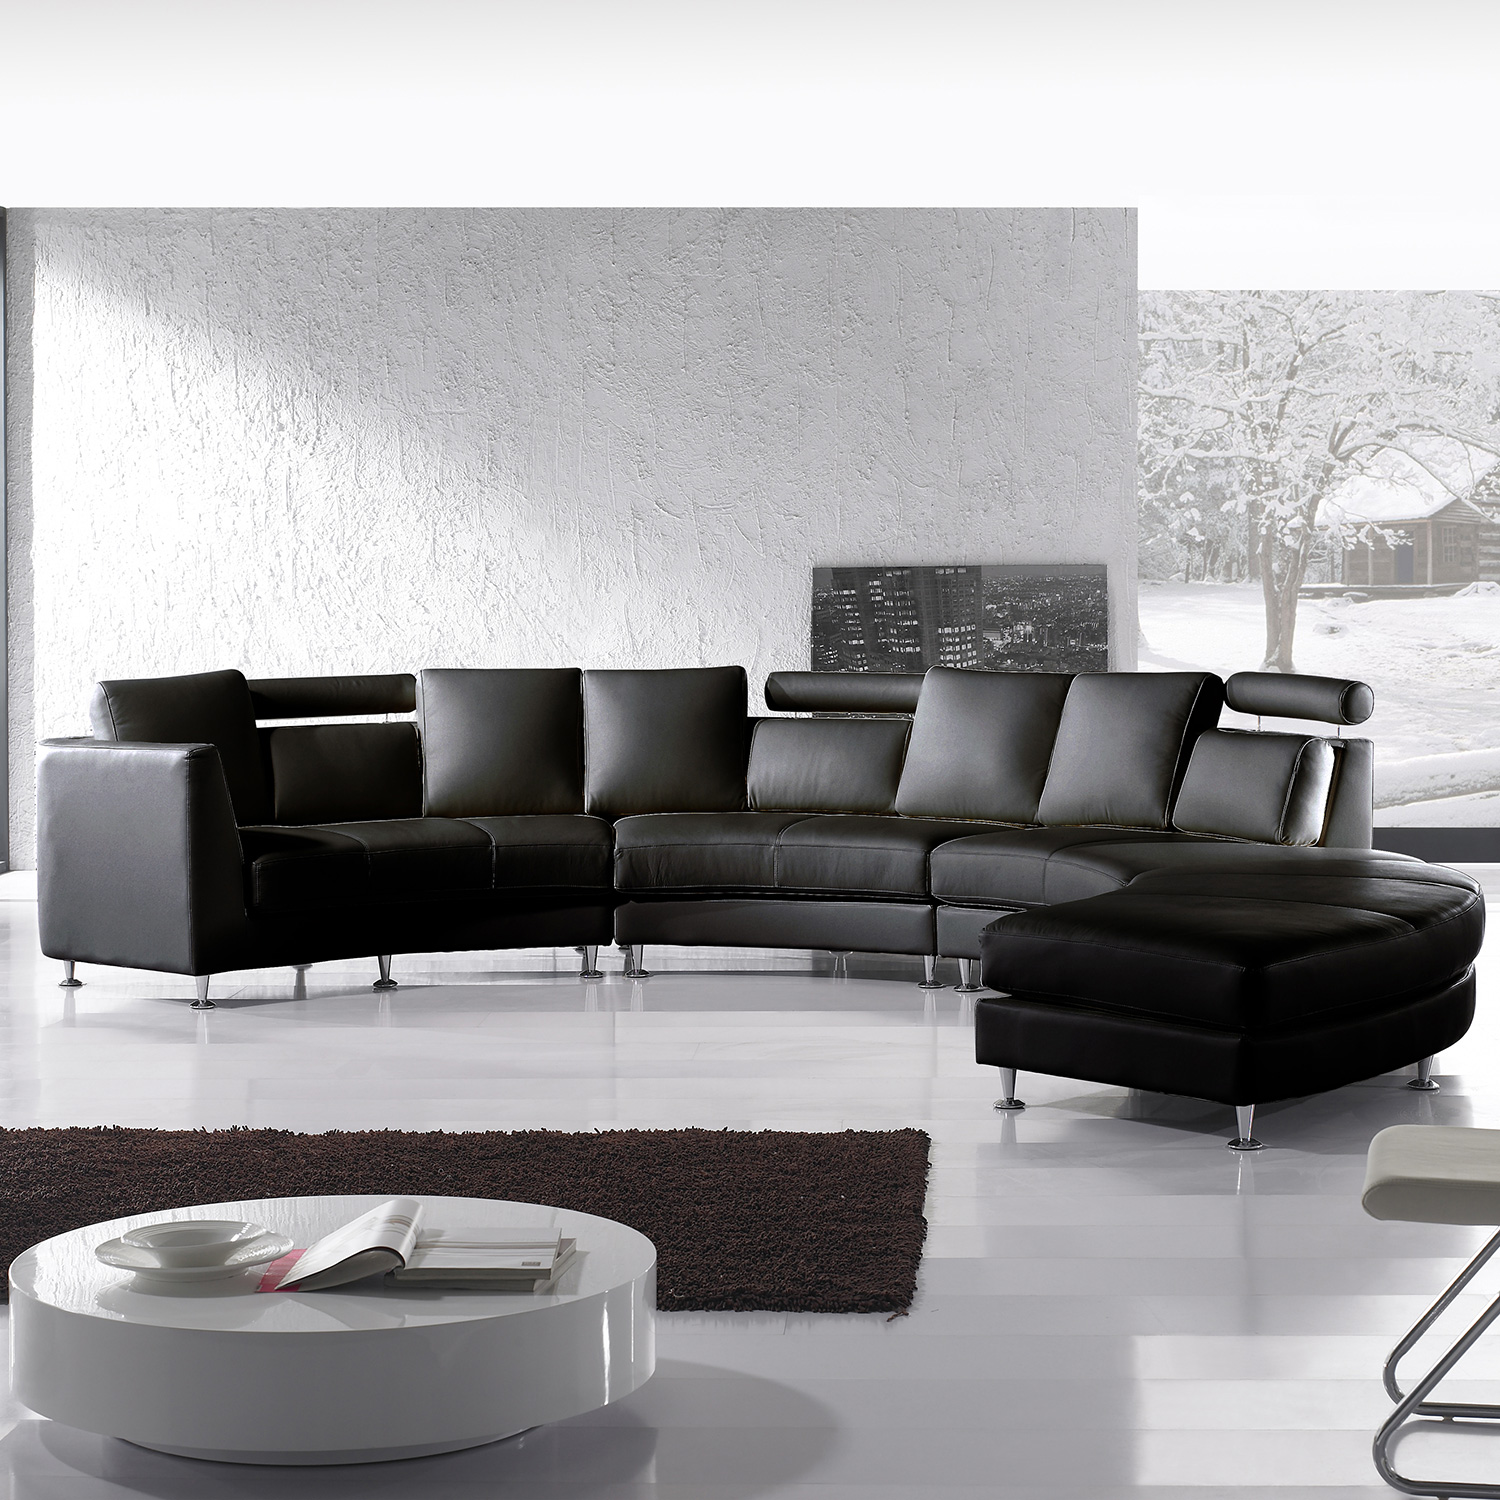 Sofa Sectional Modular Beige Fabric Living Room L Shape Left Oslo Ebay